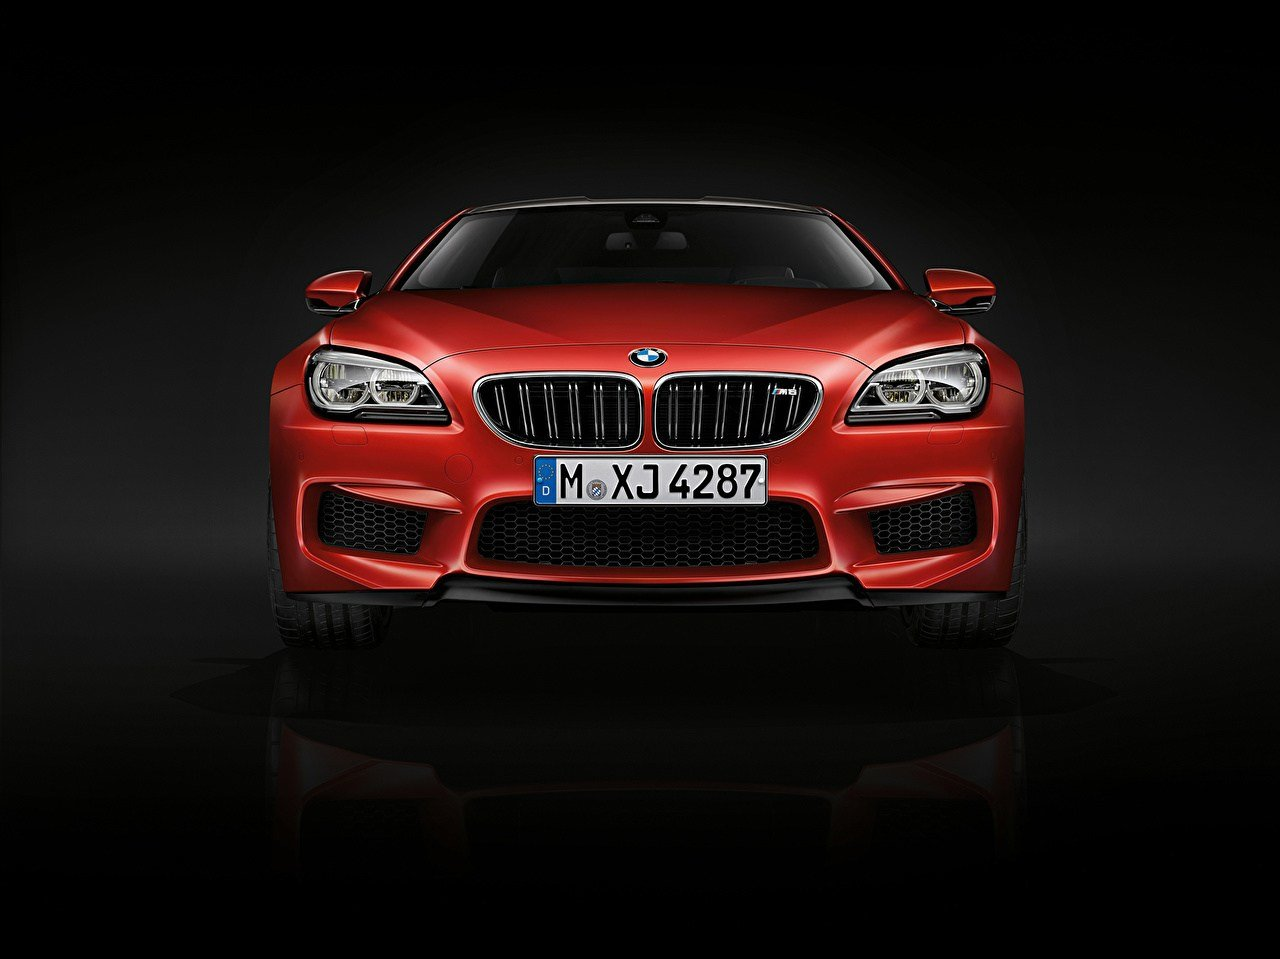 Latest Images Bmw 2015 M6 Coupe F13 Red Auto Front Black Background Free Download